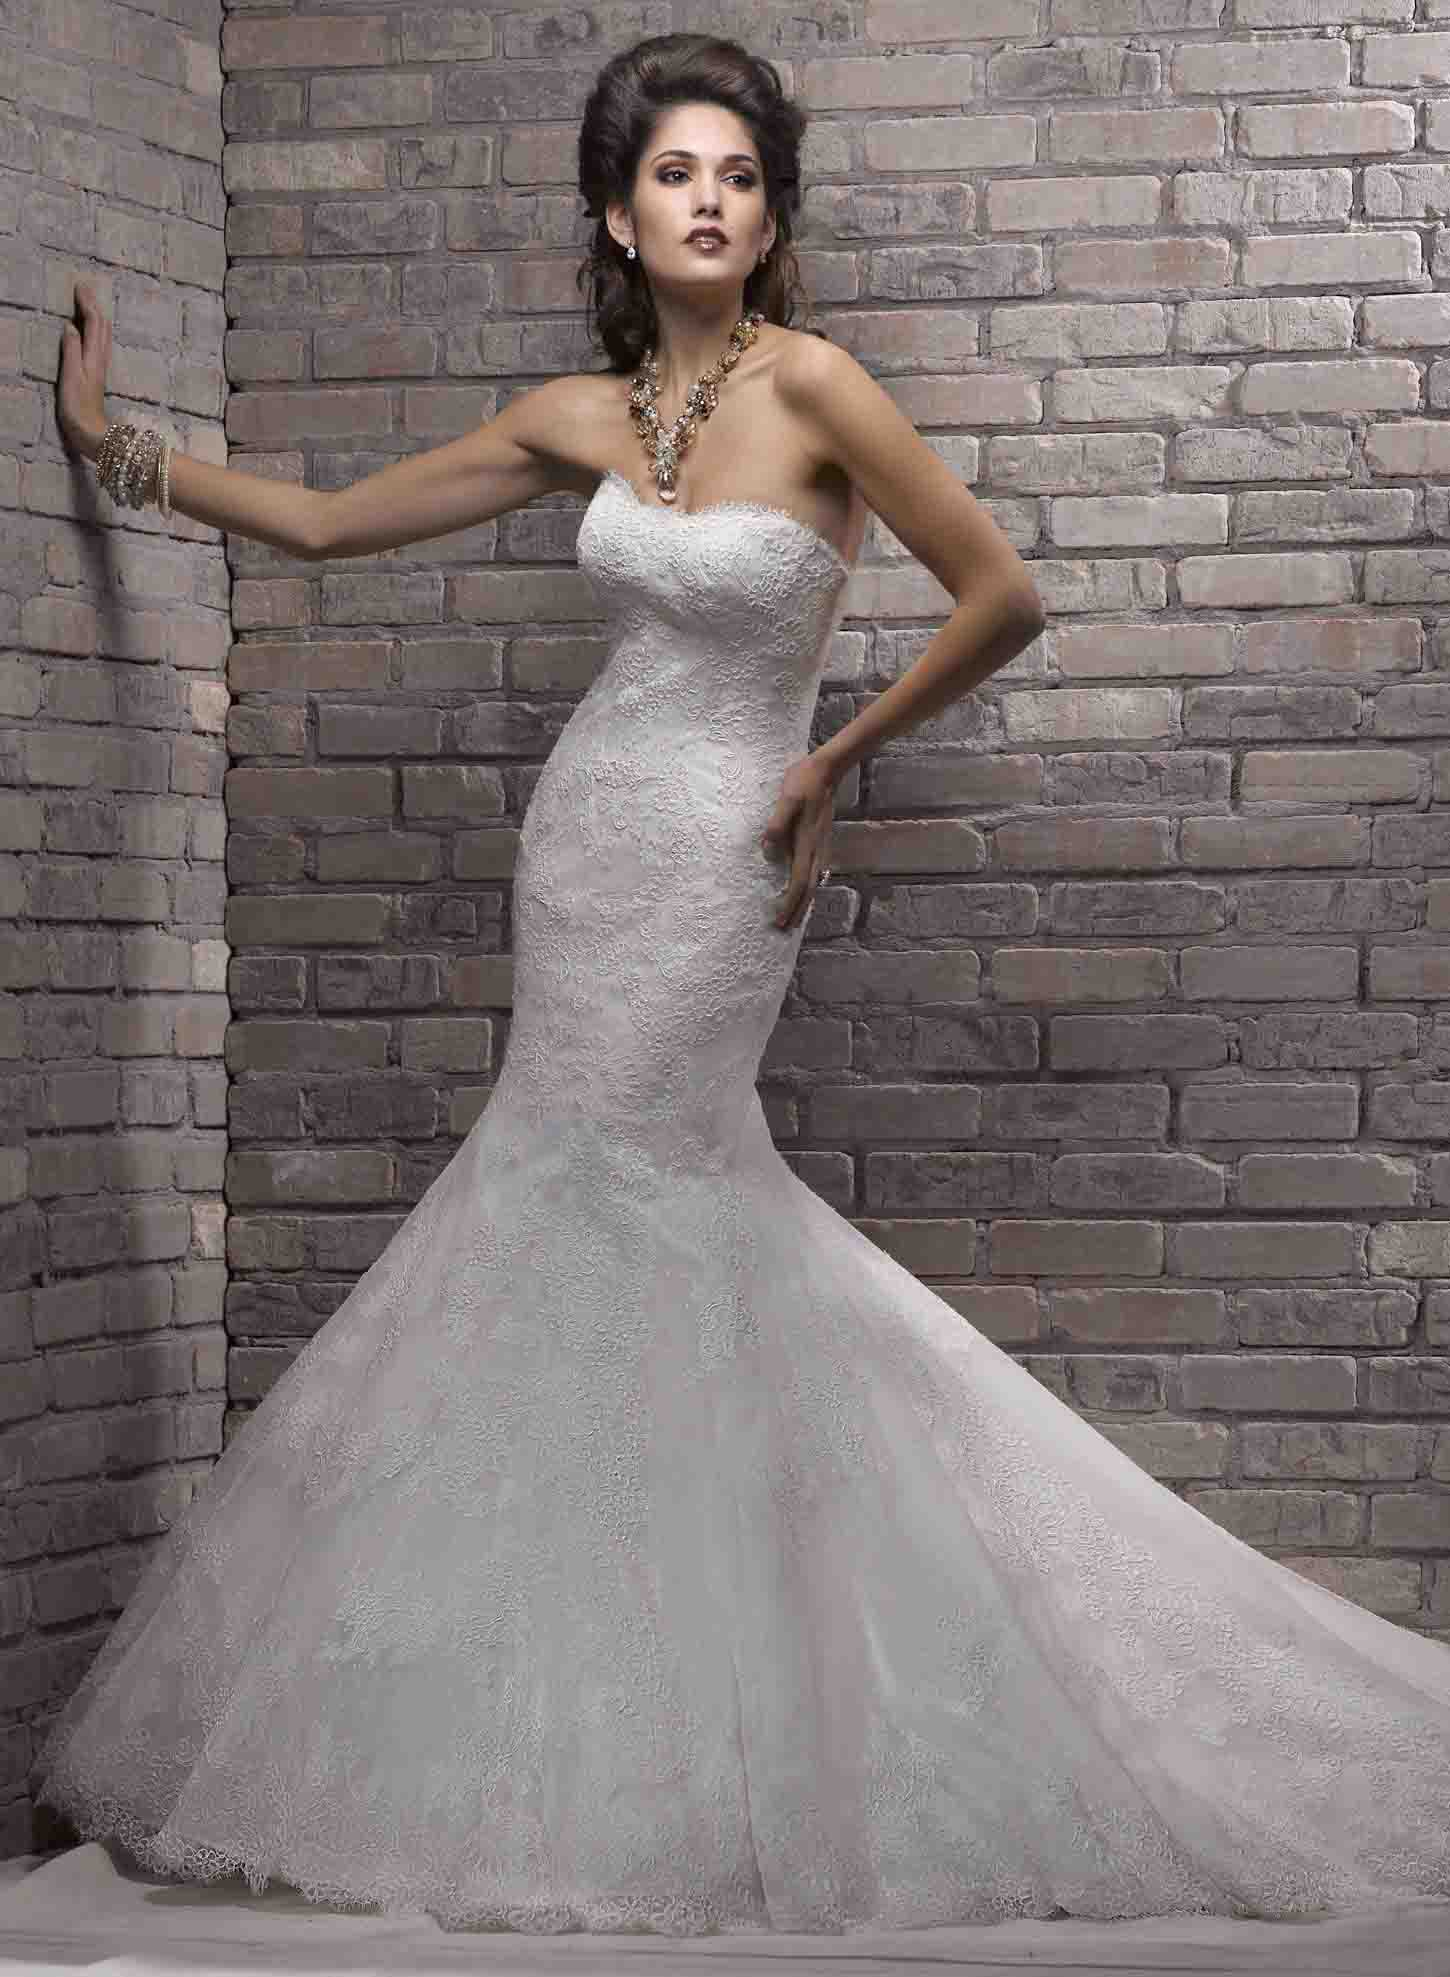 Amazing Mermaid Wedding Dresses 2013 (29)